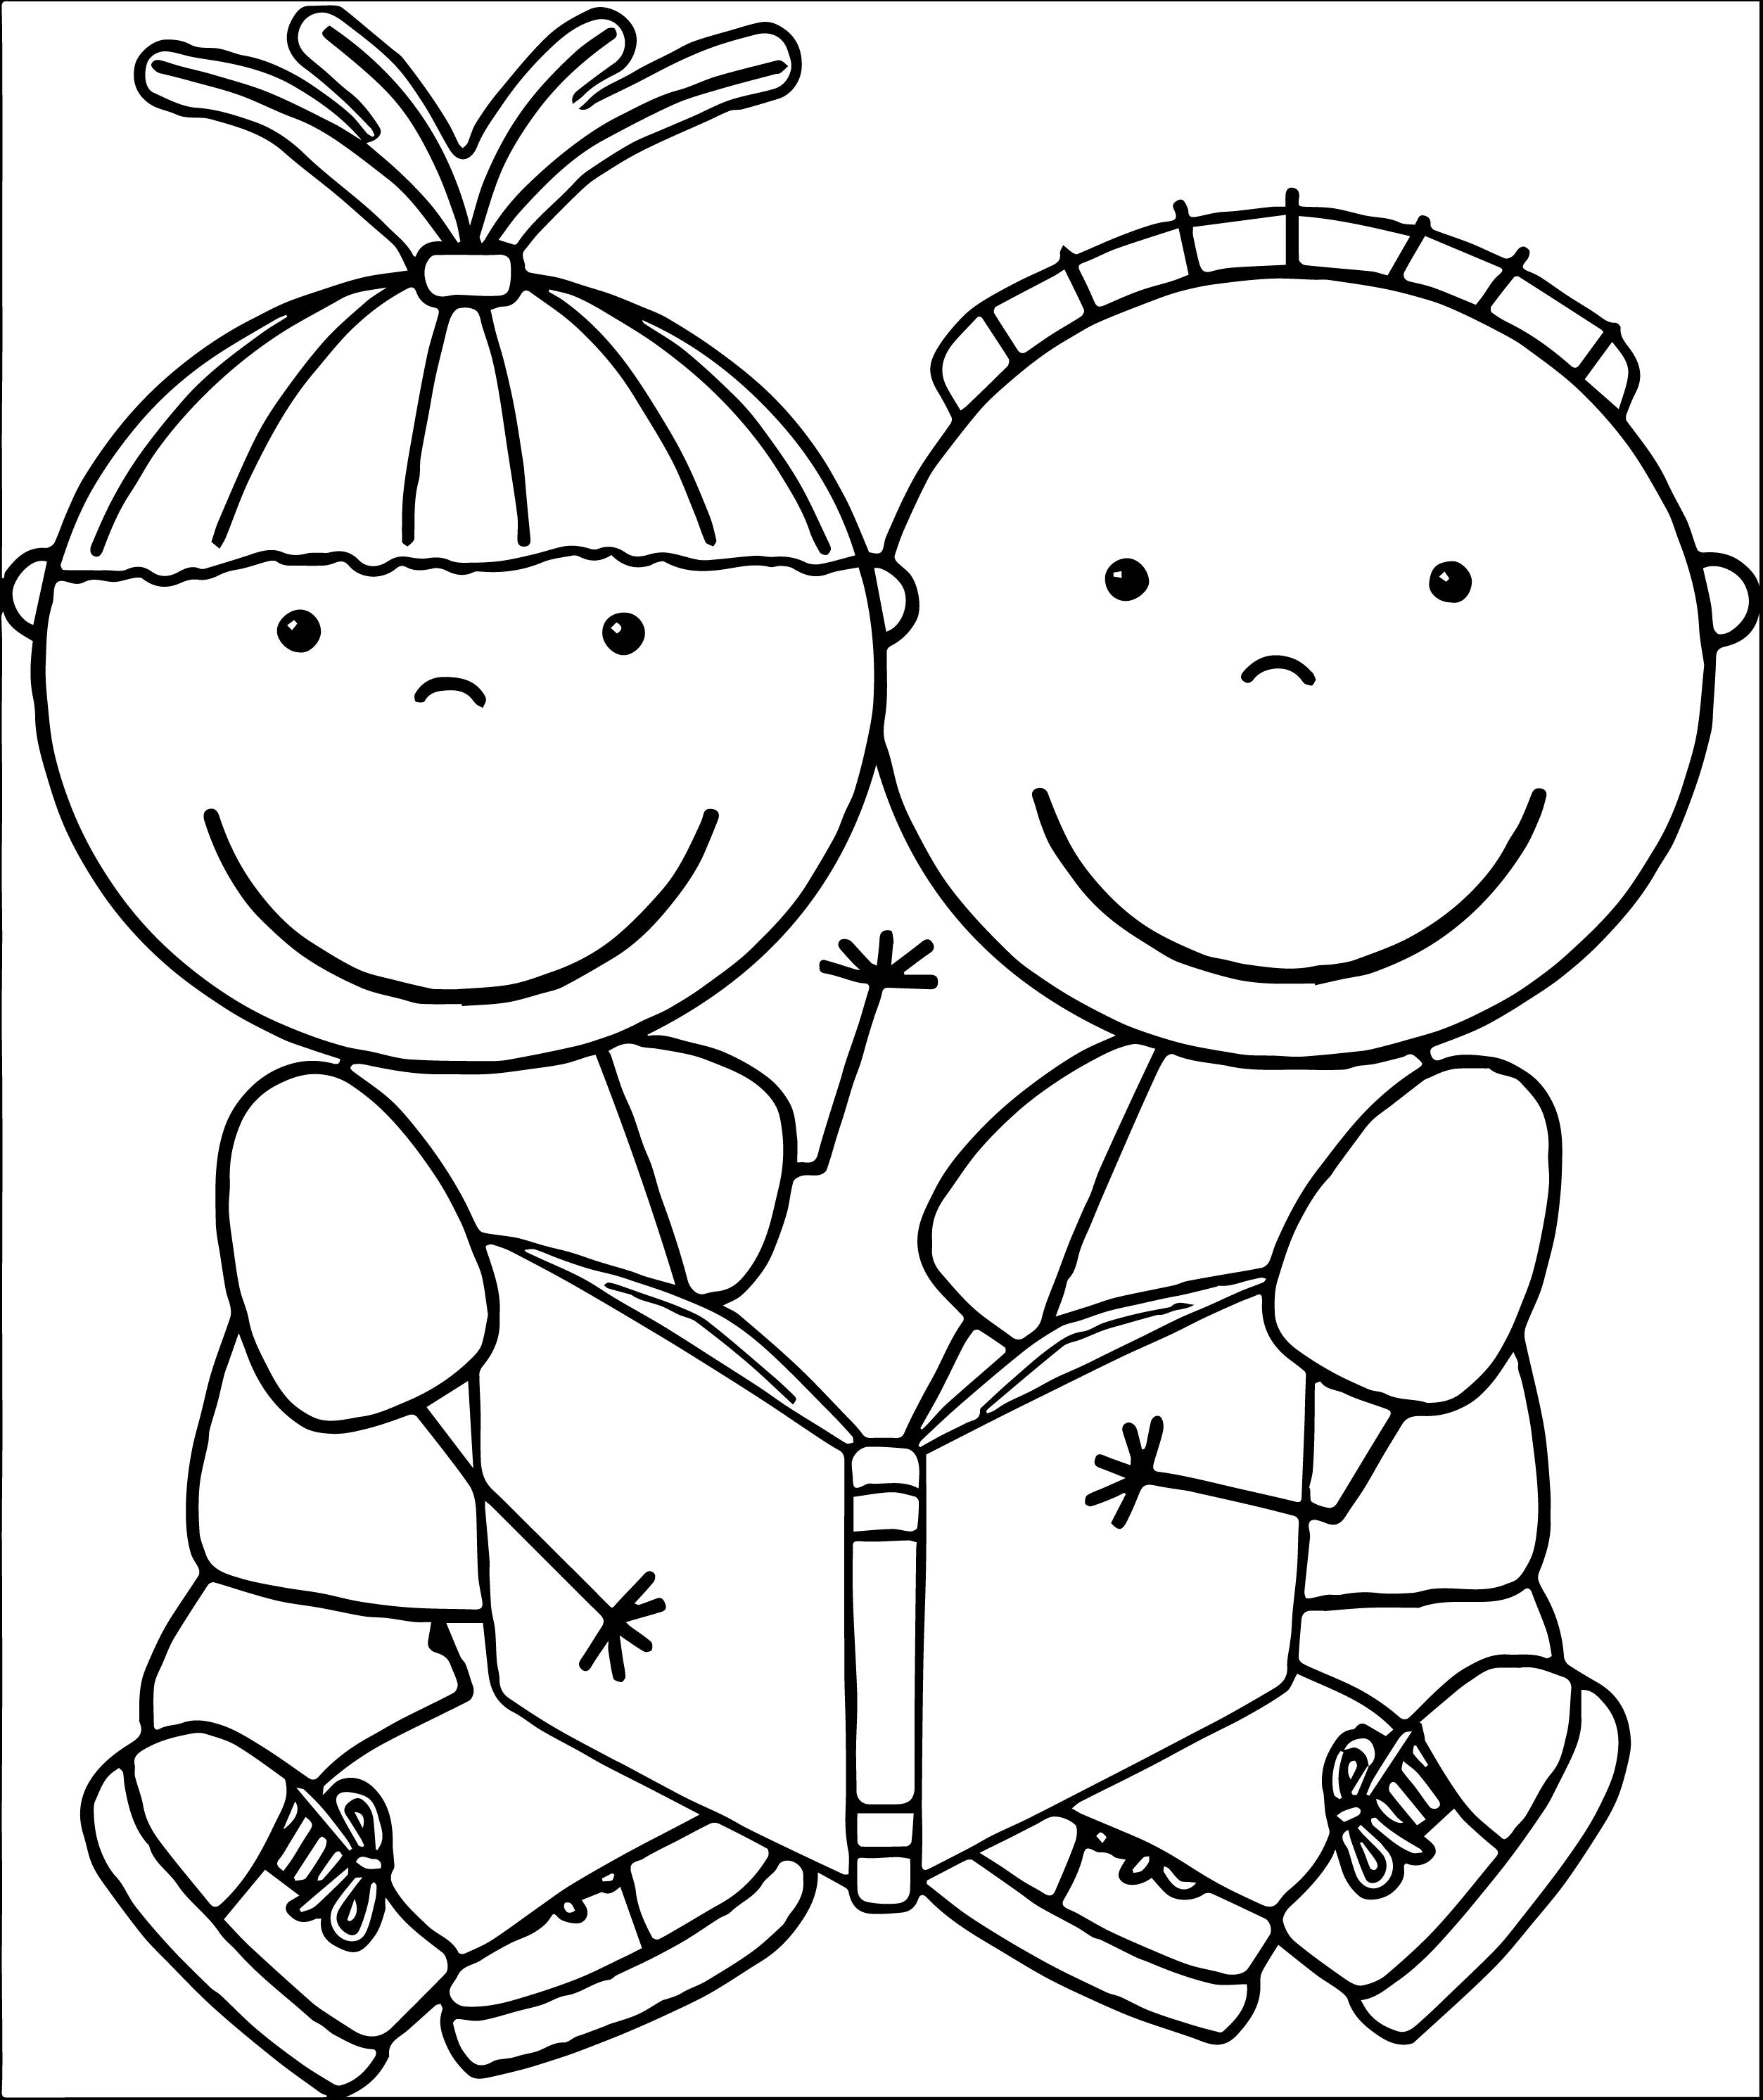 Free Educational Clipart Free Clip Art Children Reading Books 202 417 Kids We Coloring Page